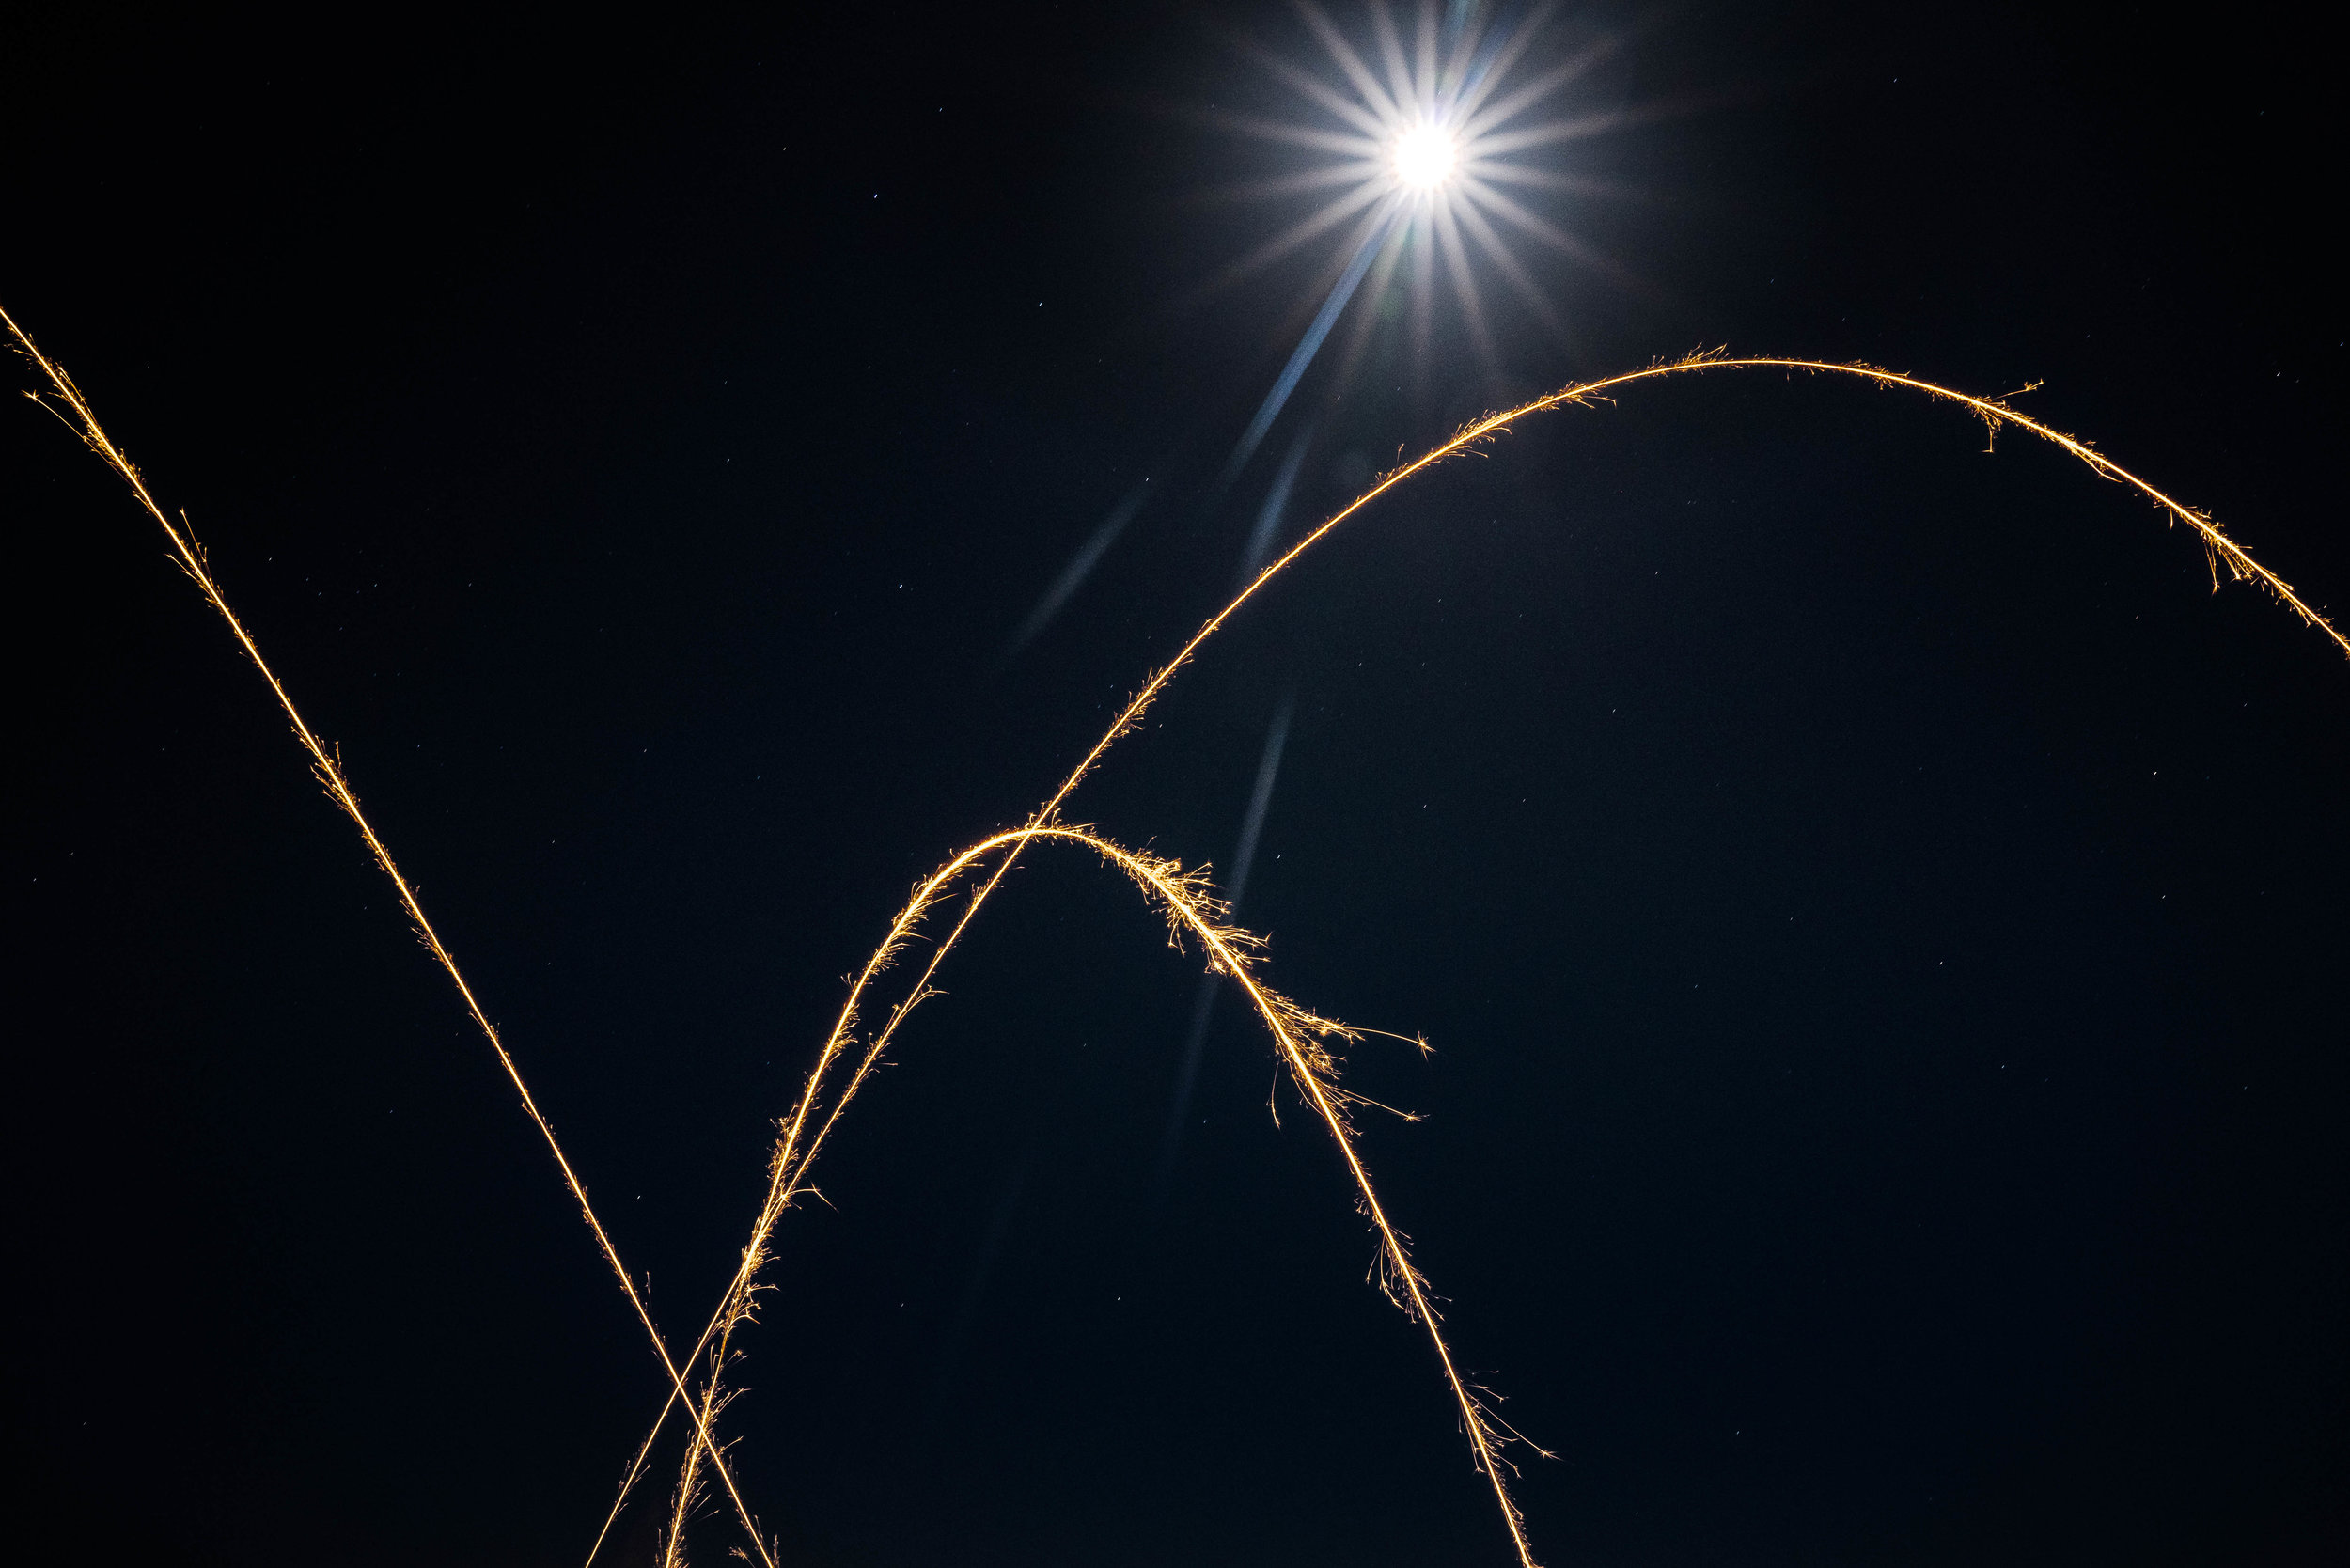 Moon Beams and Sparklers